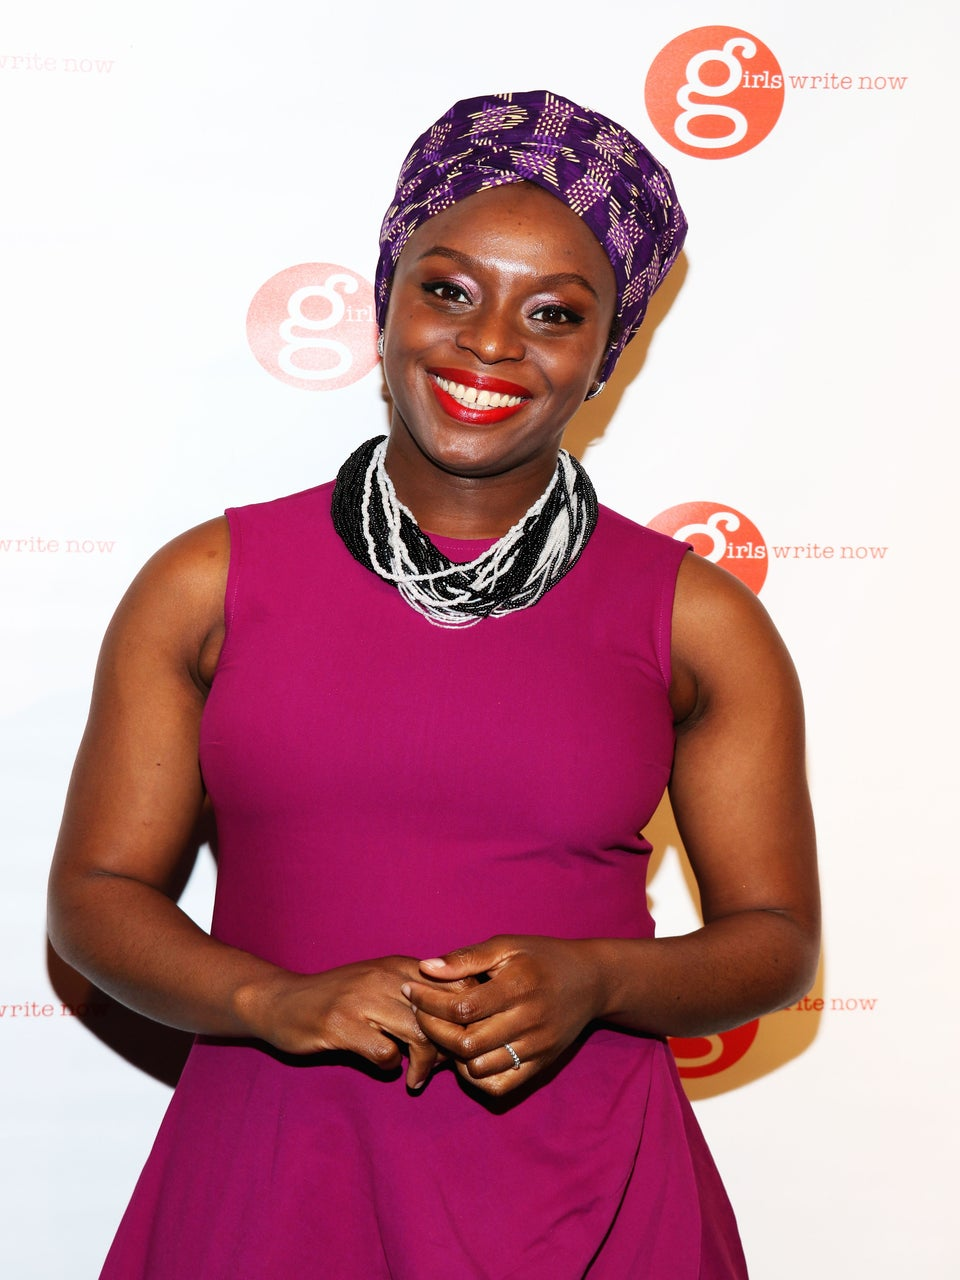 Another Chimamanda Ngozi Adichie Story Is Being Adapted Into a Film